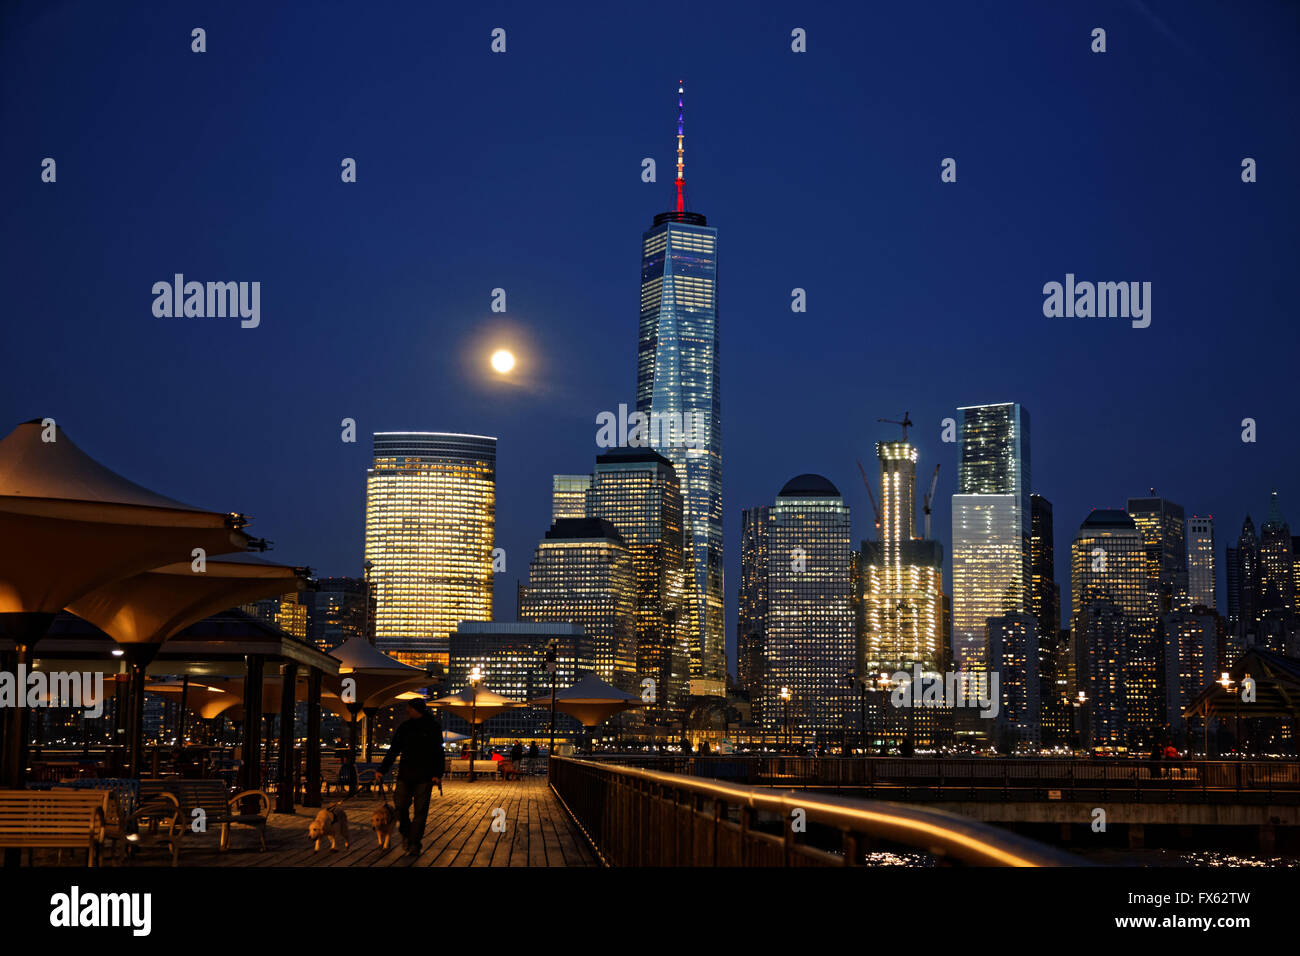 La luna se eleva sobre el World Trade Center en el Bajo Manhattan, Nueva York. Photo by Trevor Collens Imagen De Stock